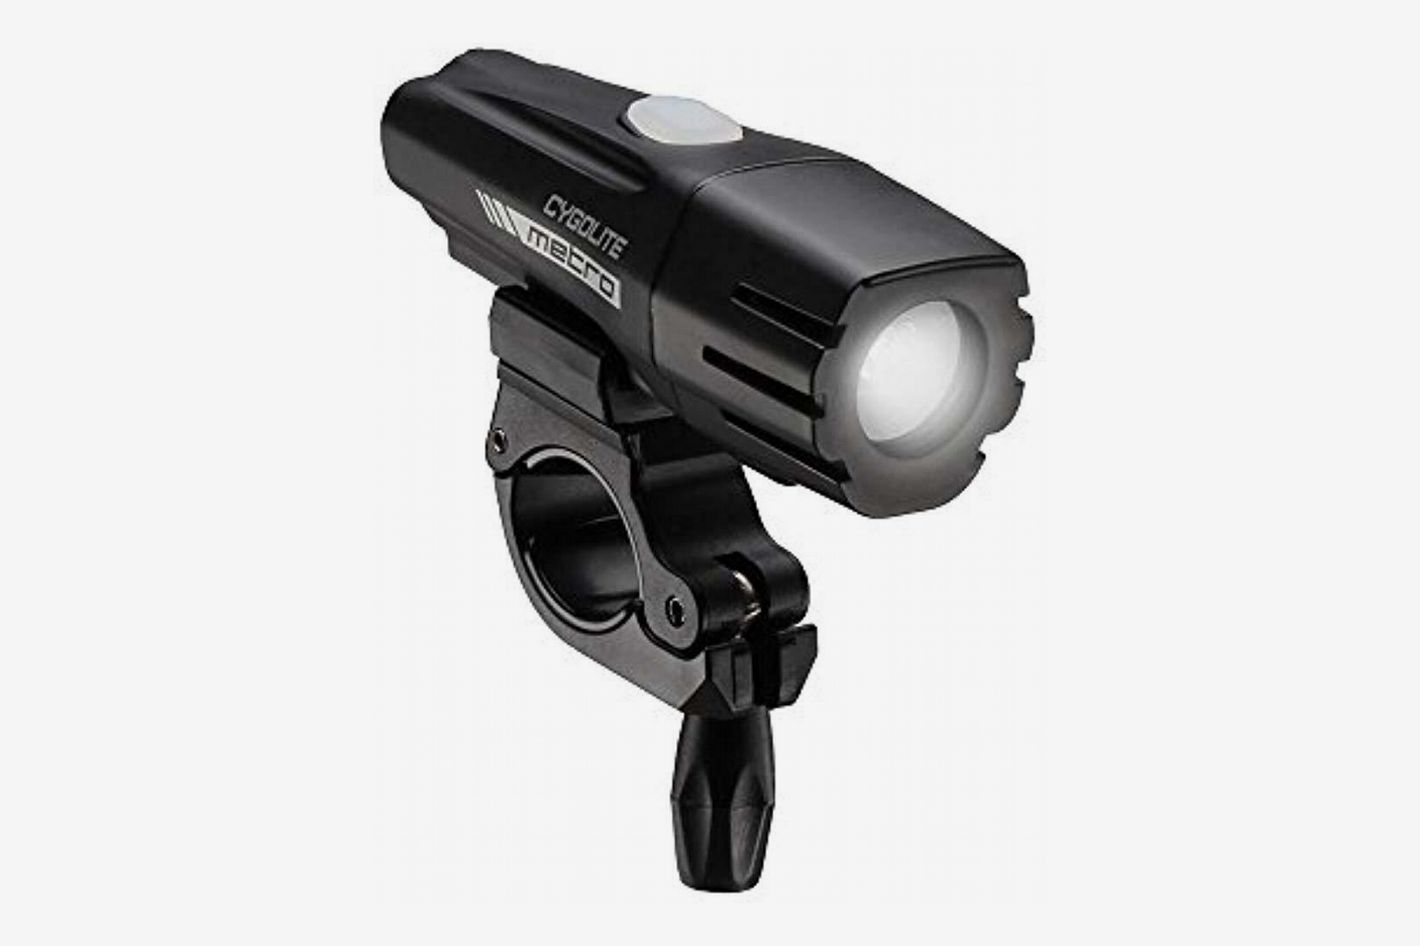 Cygolite Metro 550 Lumen Bike Light